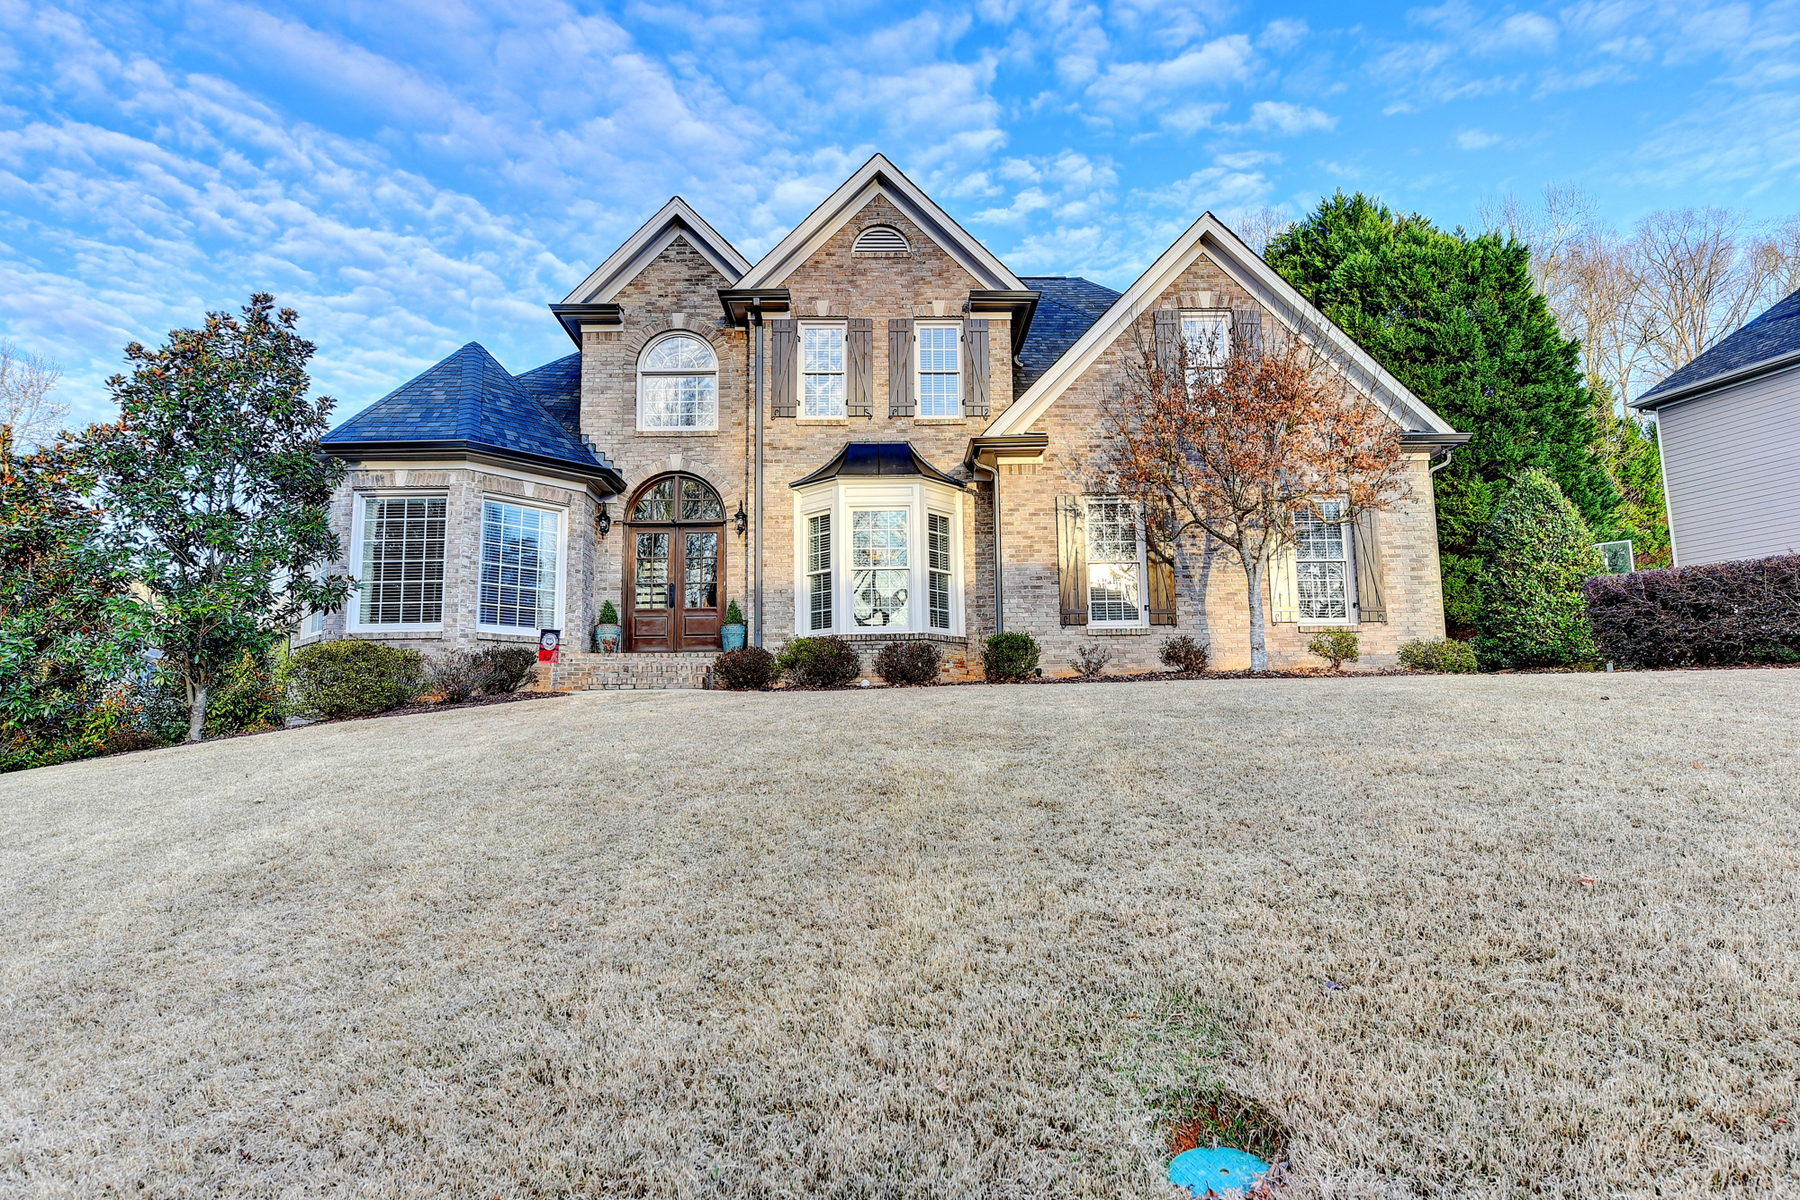 Single Family Homes for Active at Retreat...At Home 5965 Wild Timber Road Sugar Hill, Georgia 30518 United States